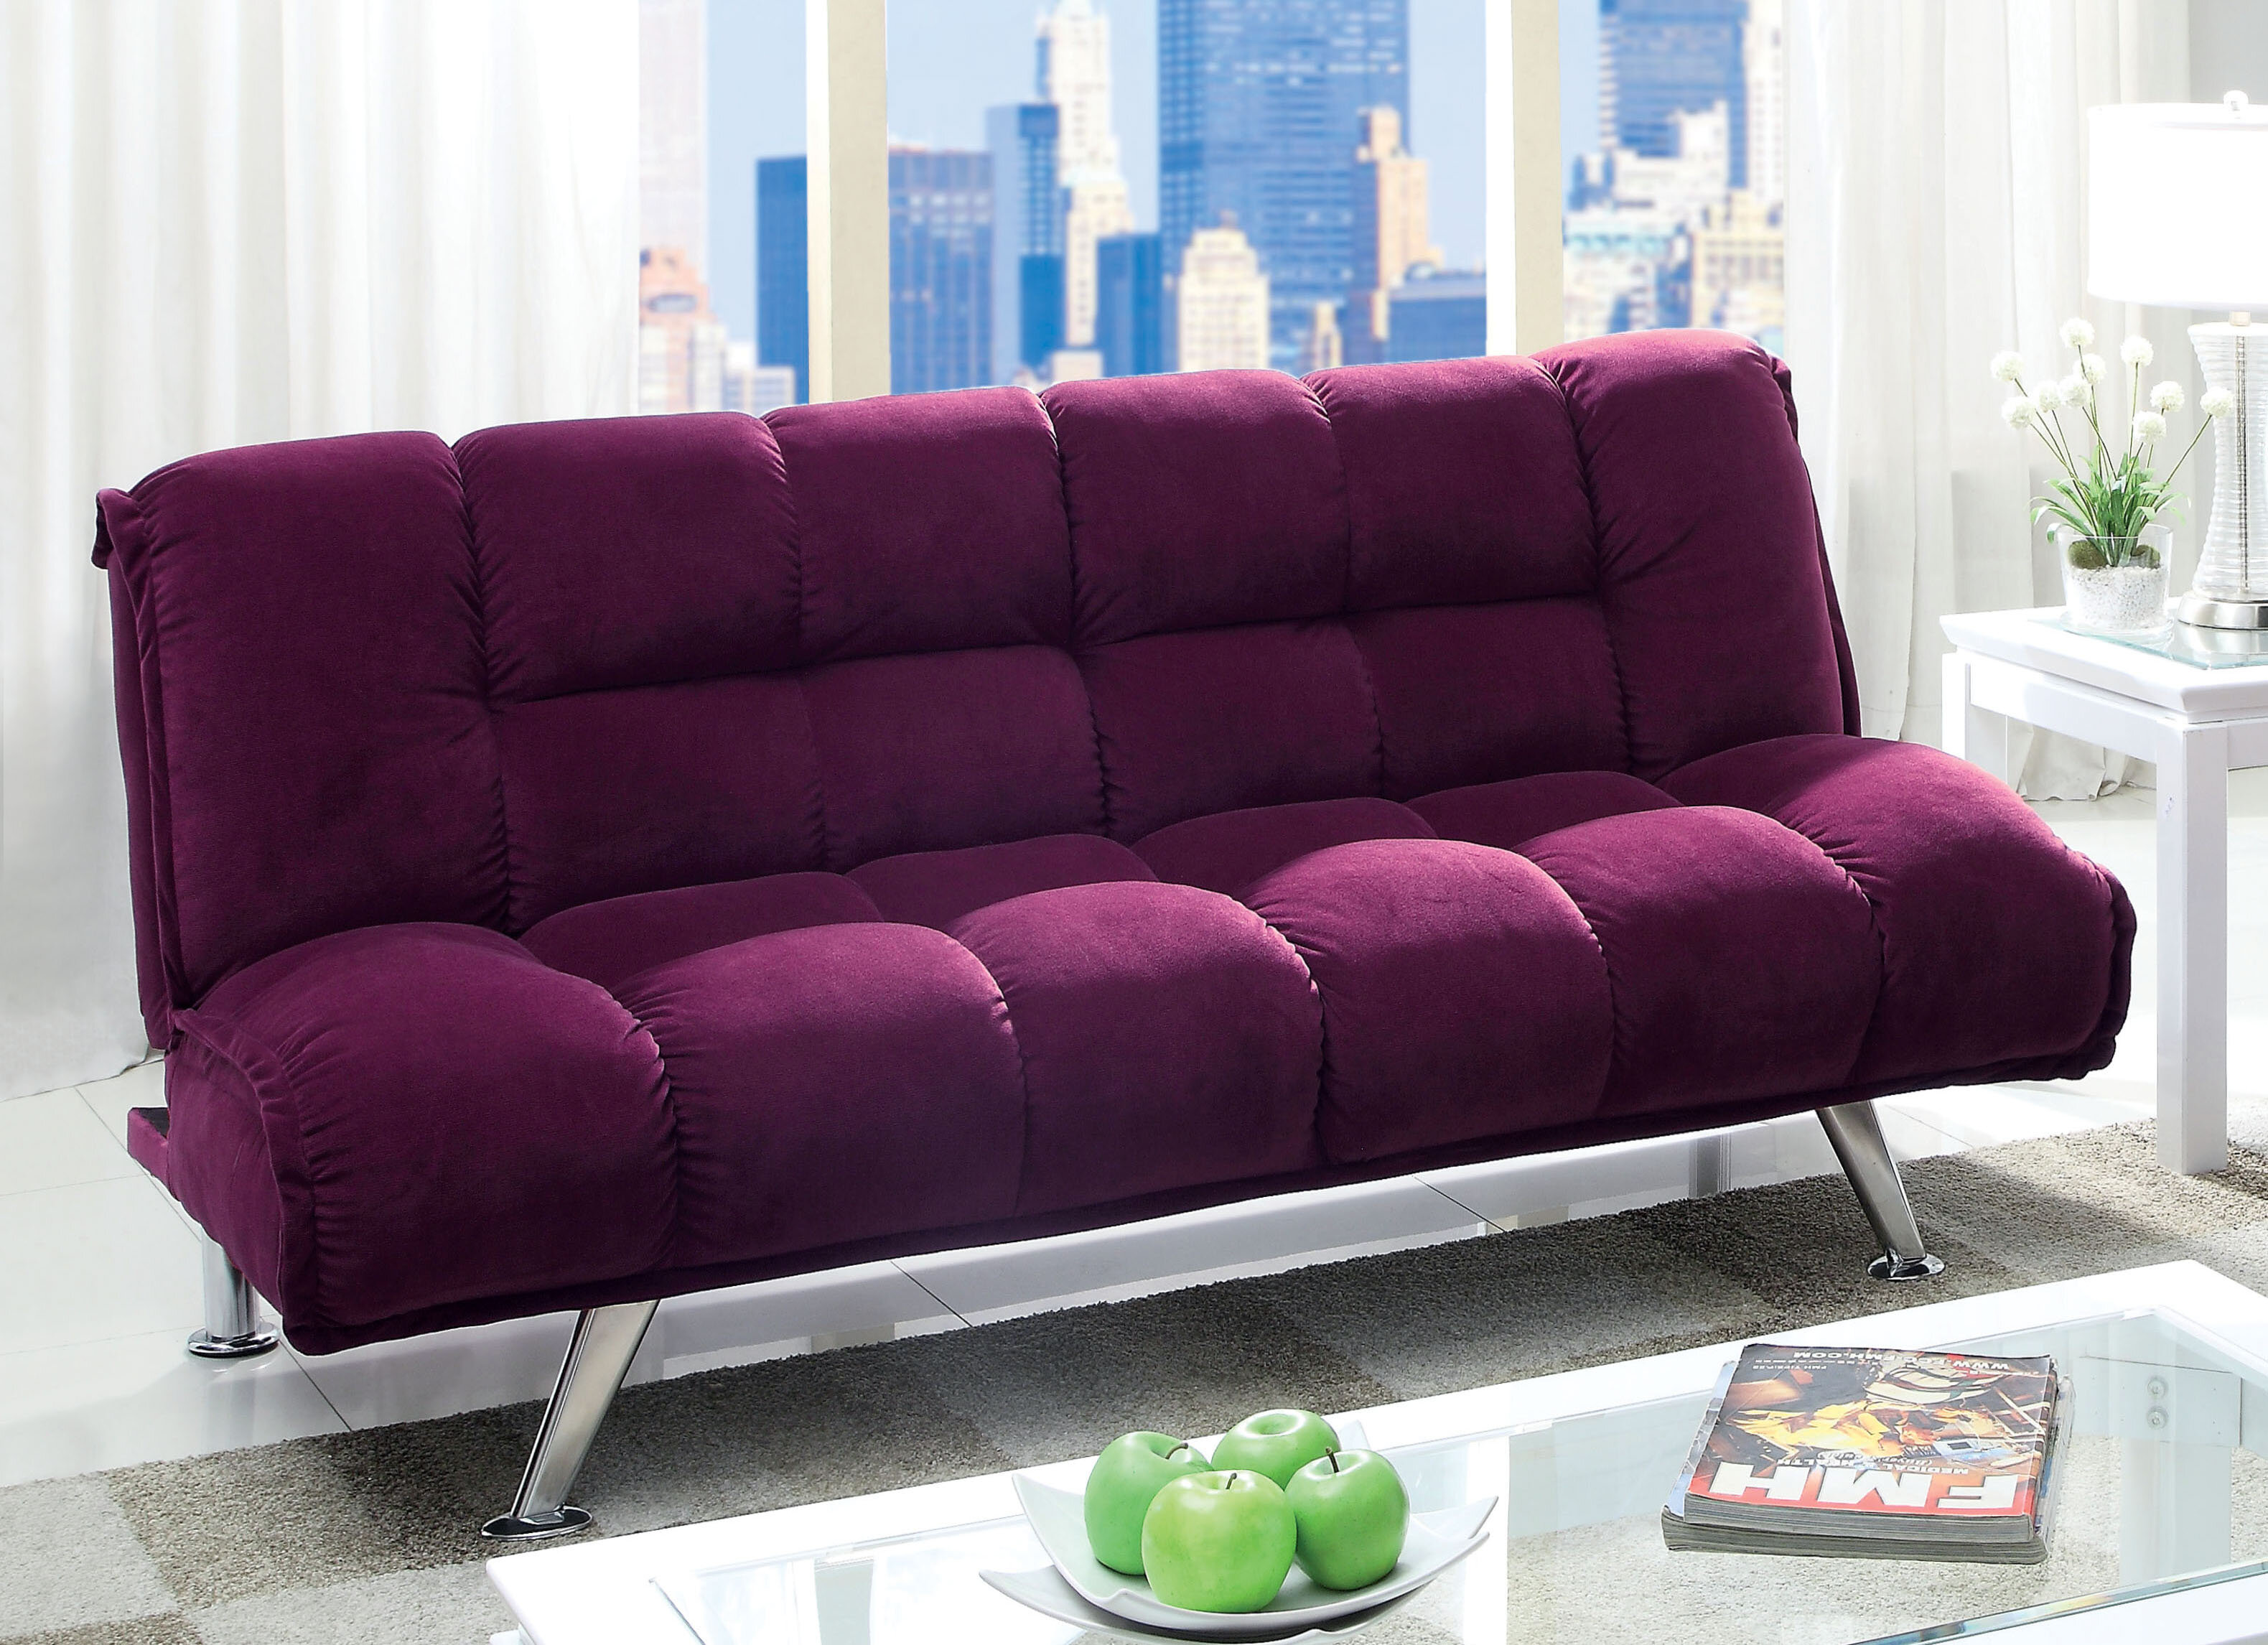 Sensational Oberon Twin Tufted Back Convertible Sofa Caraccident5 Cool Chair Designs And Ideas Caraccident5Info